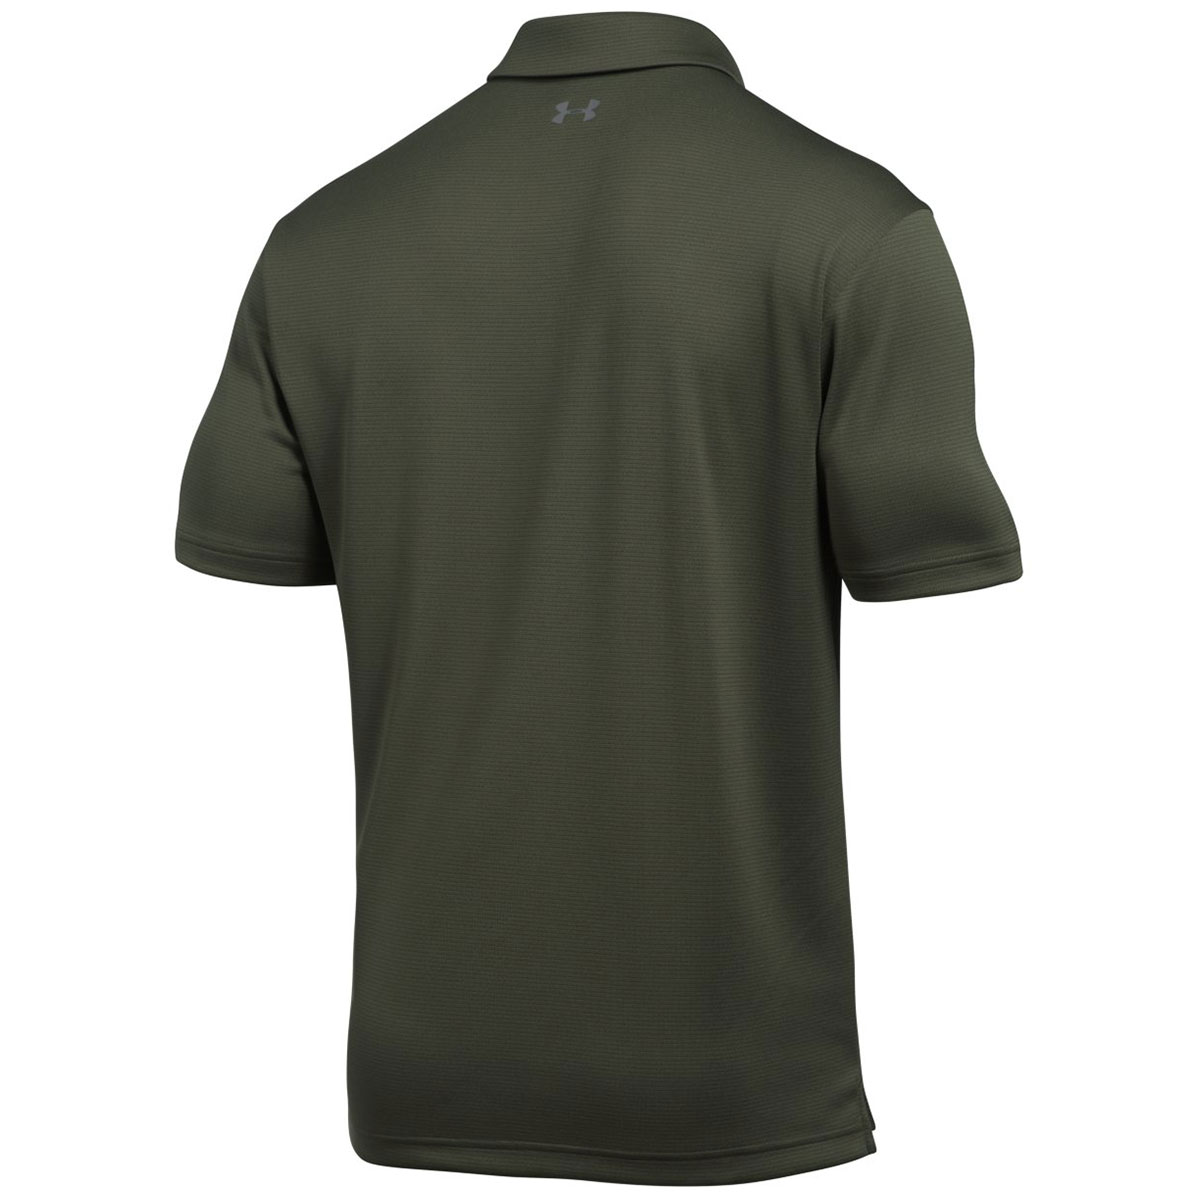 Under-Armour-Mens-Golf-Tech-Wicking-Textured-Soft-Light-Polo-Shirt thumbnail 29